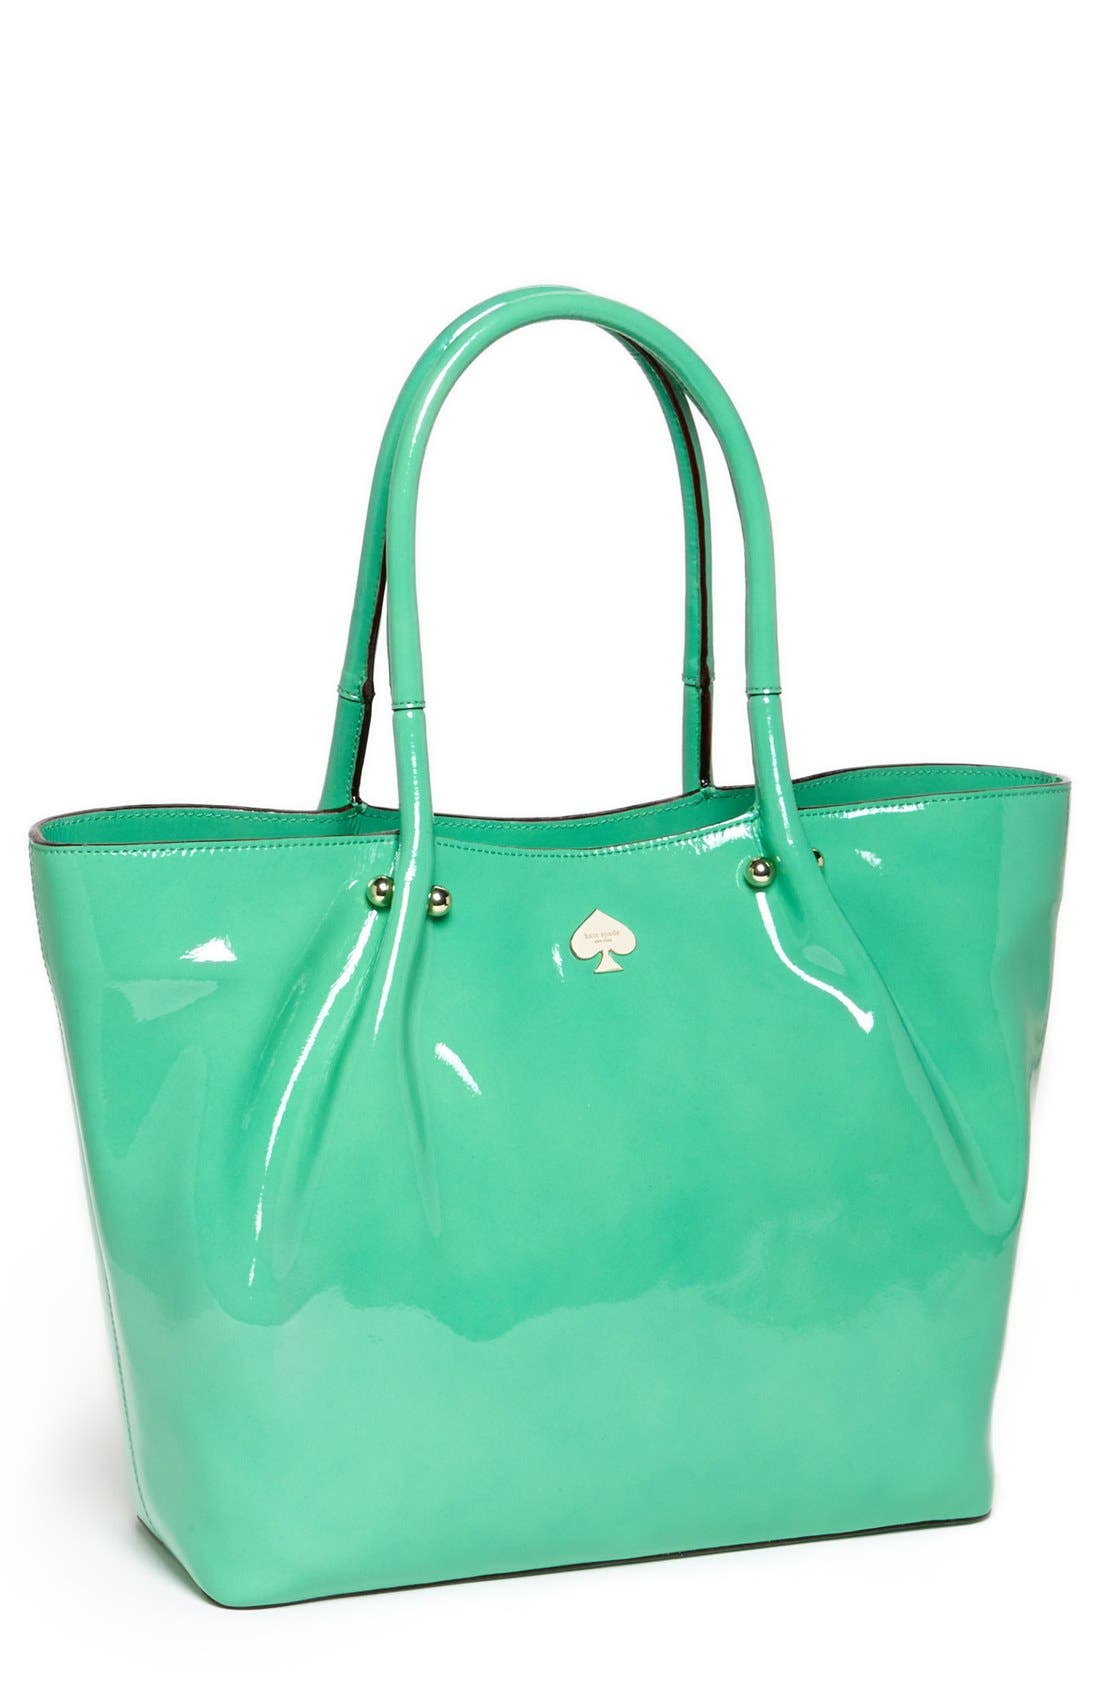 Alternate Image 1 Selected - kate spade new york 'first prize - tolen' leather tote